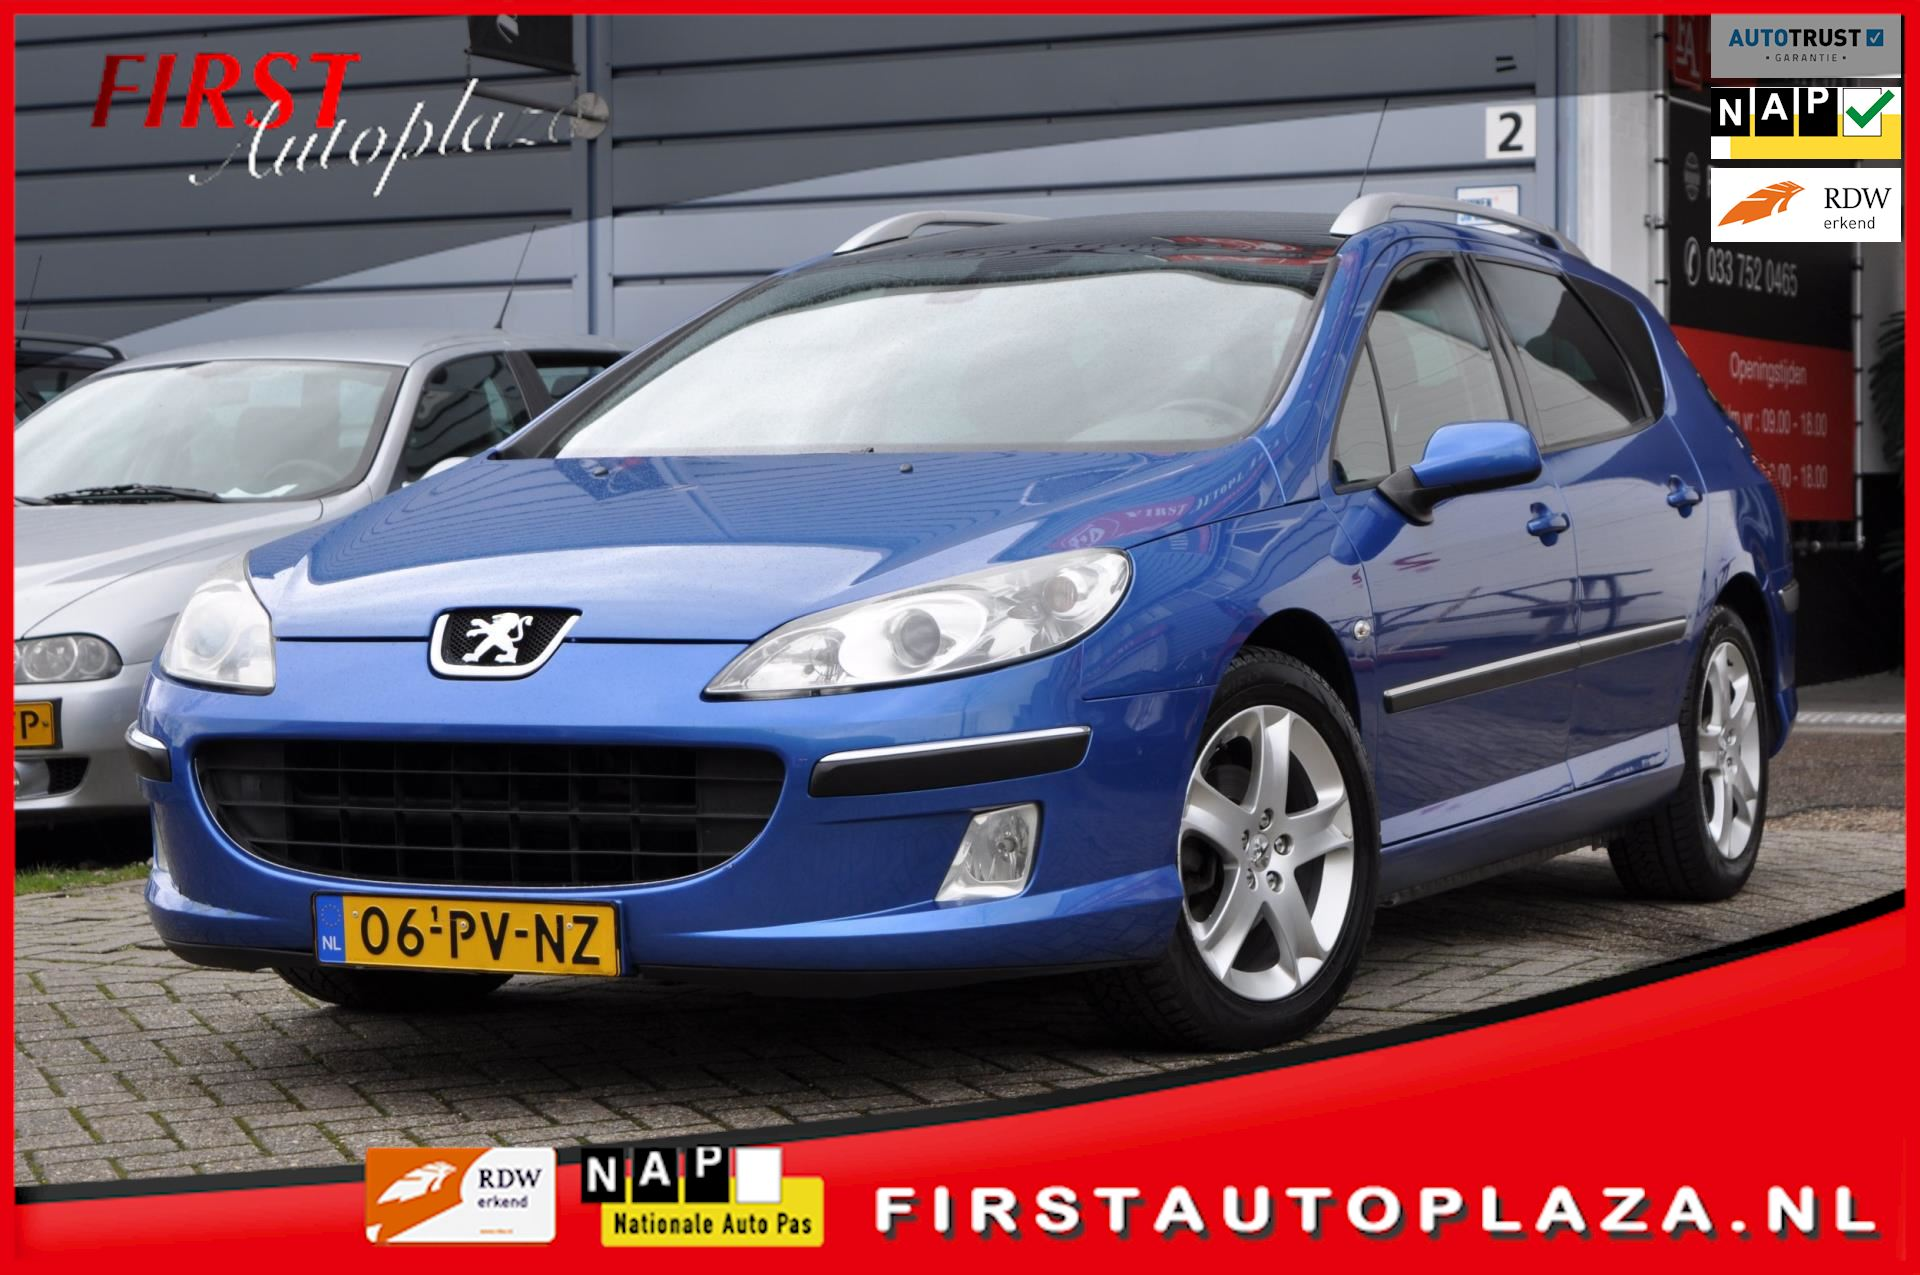 Peugeot 407 SW occasion - FIRST Autoplaza B.V.